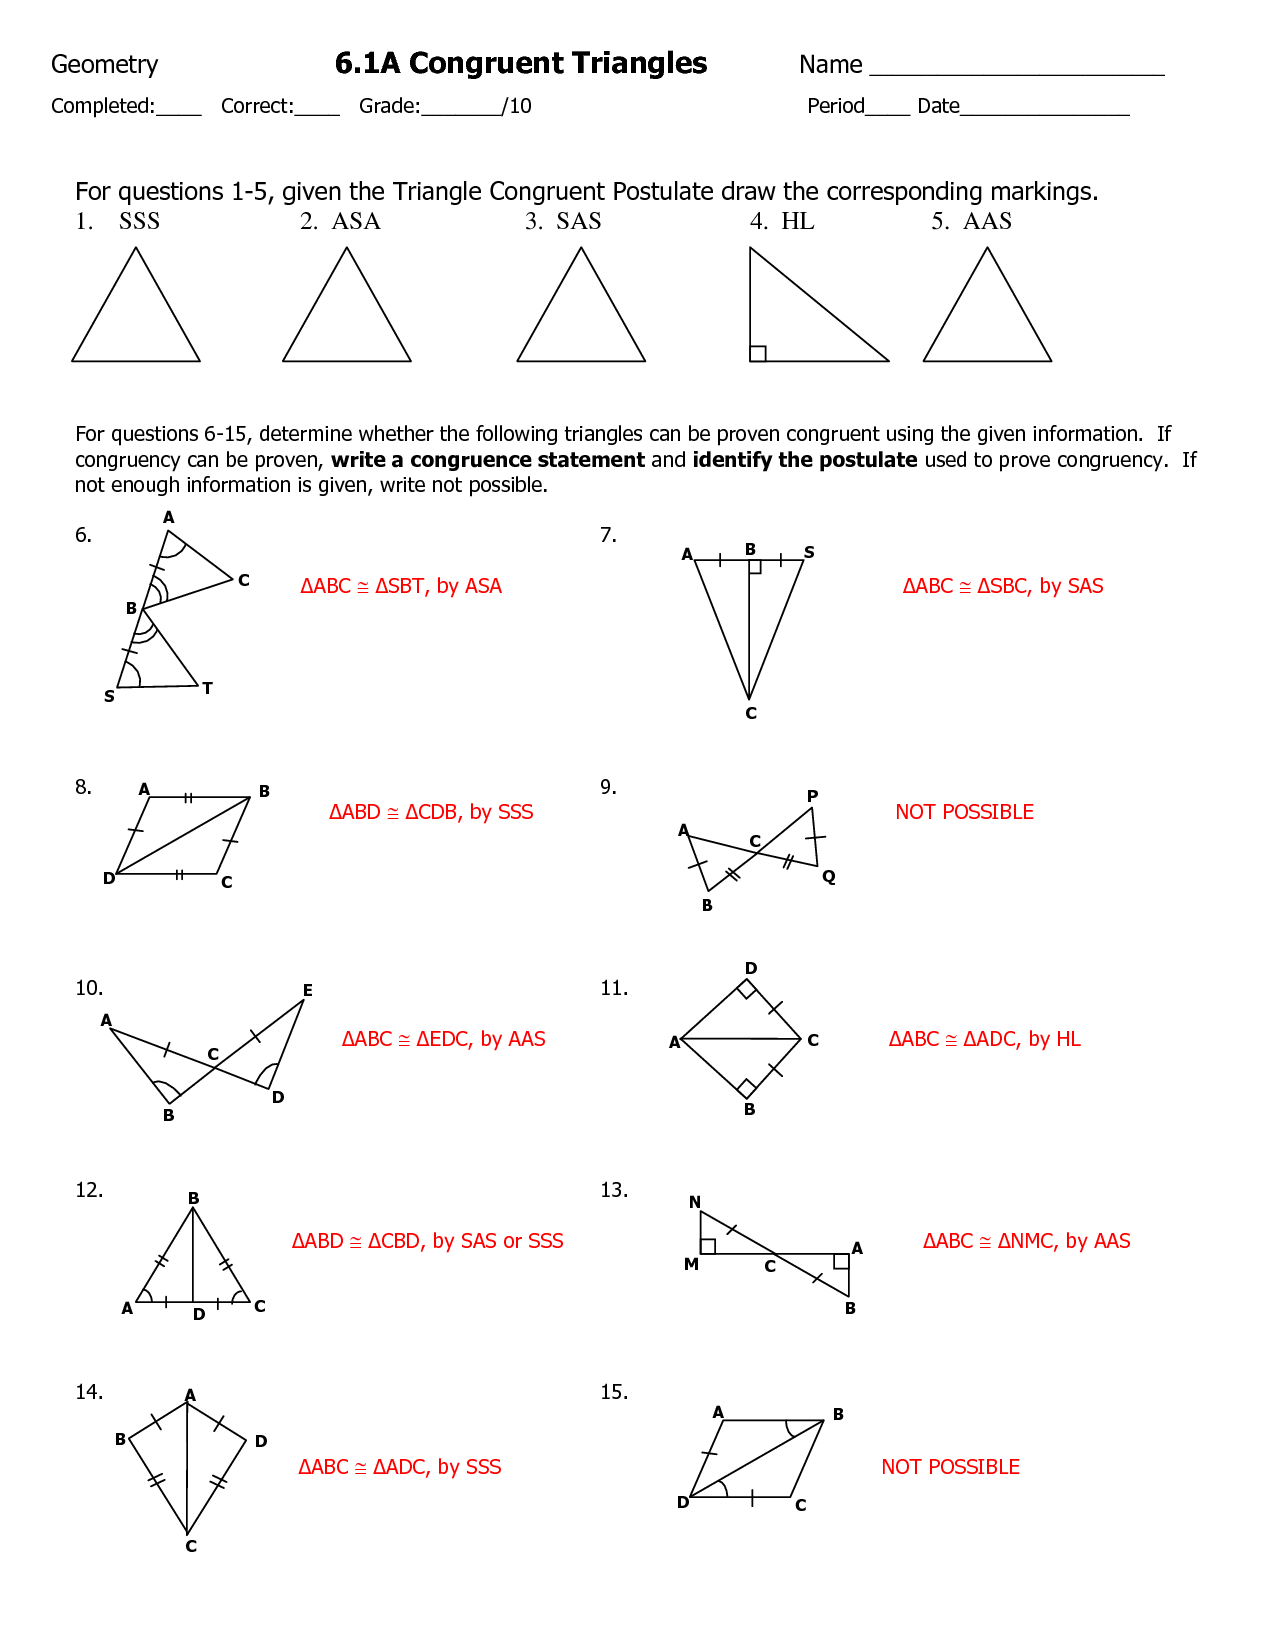 Math Worksheets Congruent Triangle Proofs 365221